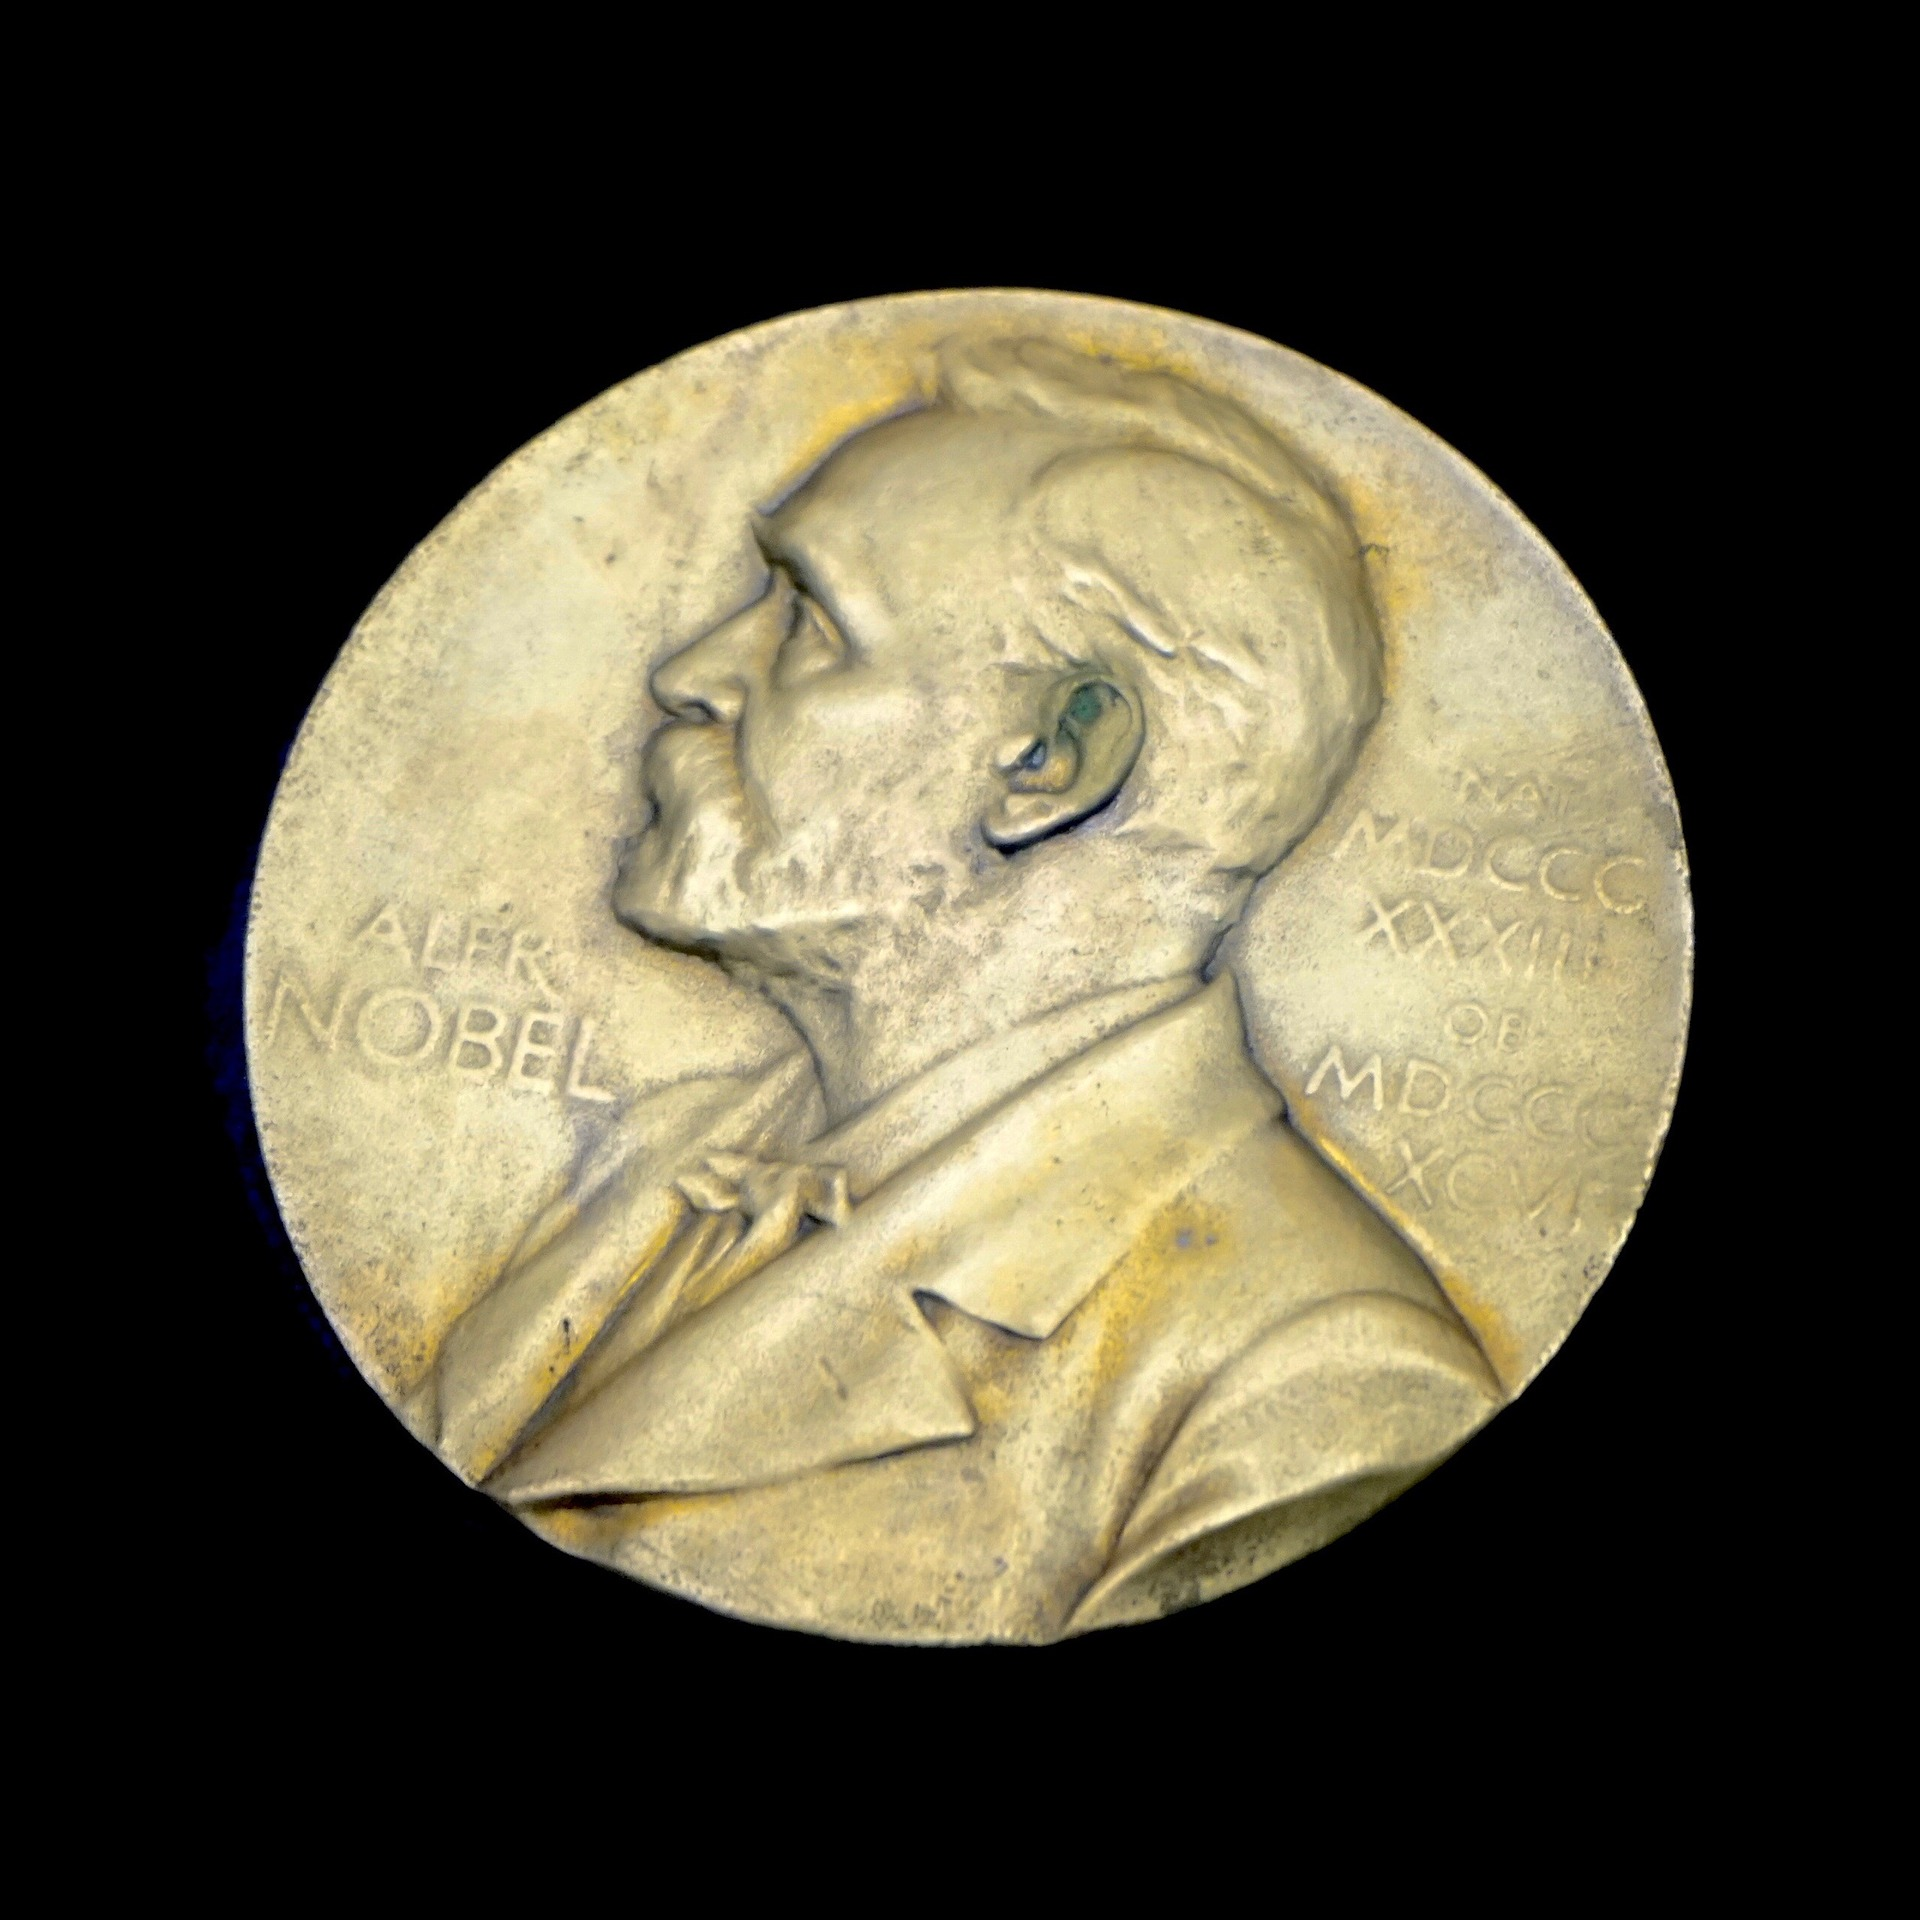 Two Nobel Awards Highlight Key Medical Discoveries